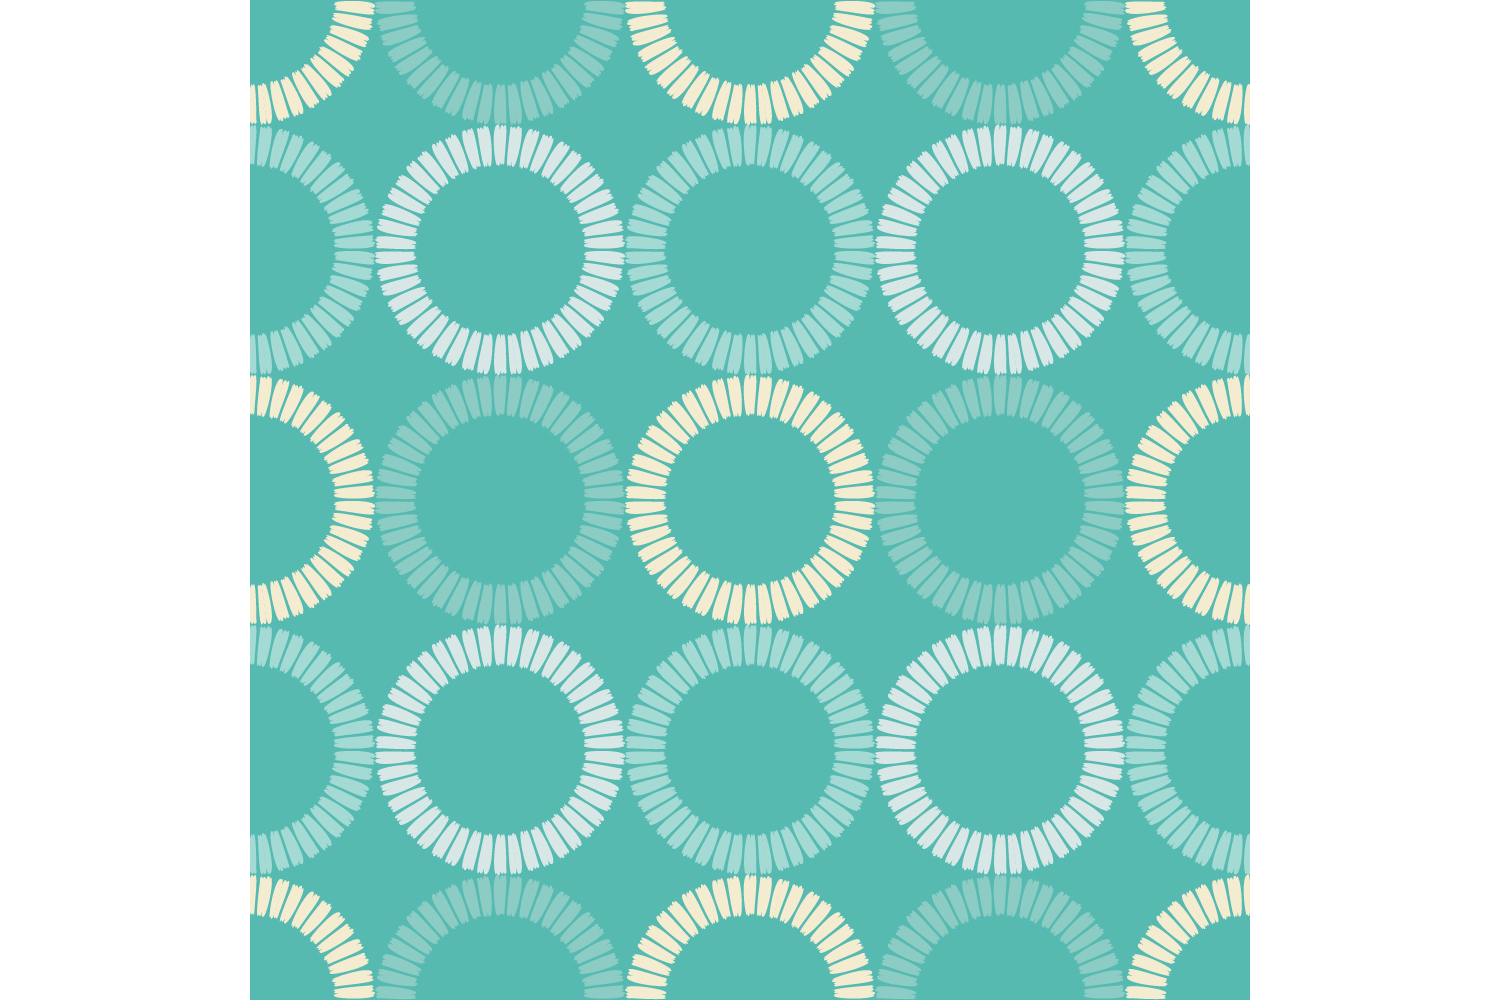 Polka dots ornament. Set of 10 seamless patterns. example image 2